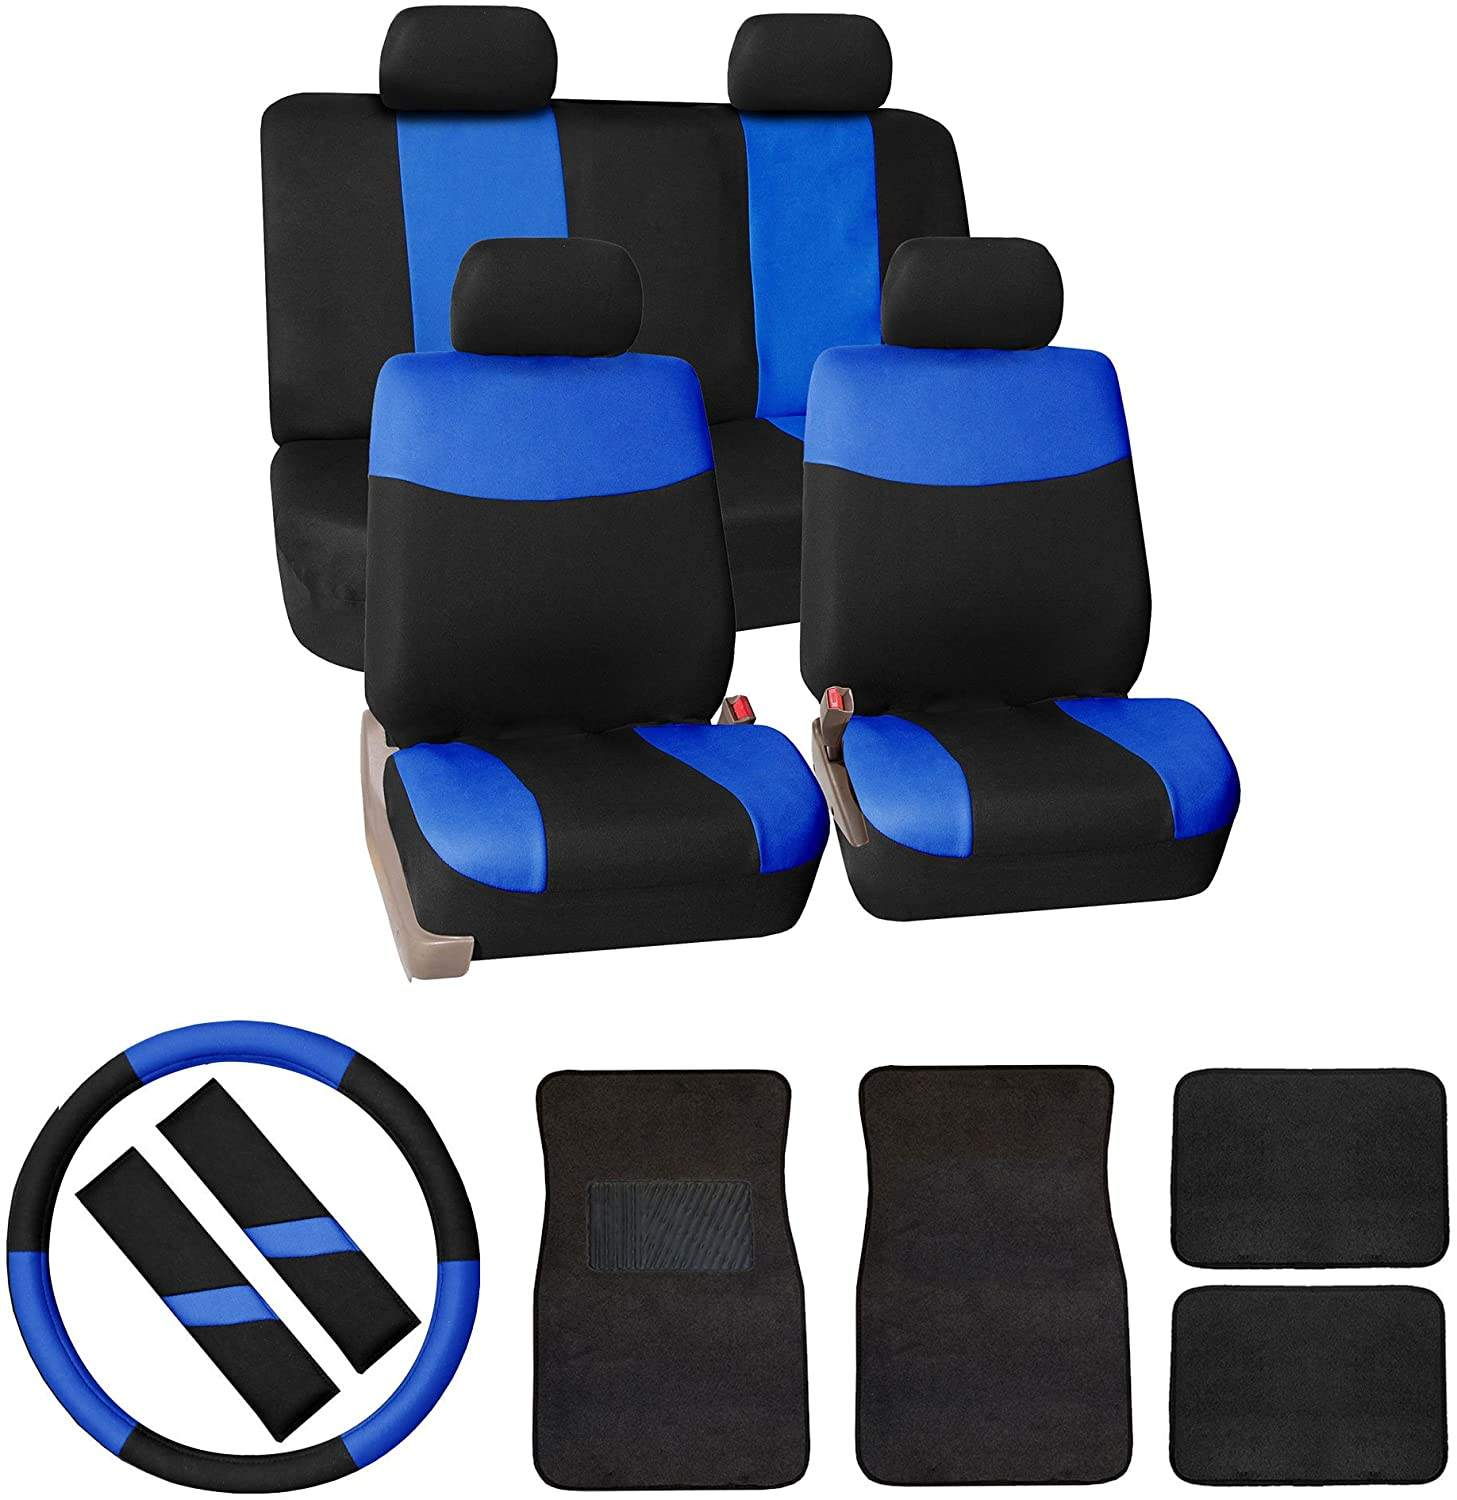 Modern Flat Cloth Car Seat Covers Combo Set Carpet Floor Mats, Steering Wheel Cover, Seat Belt Pads Blue/Black